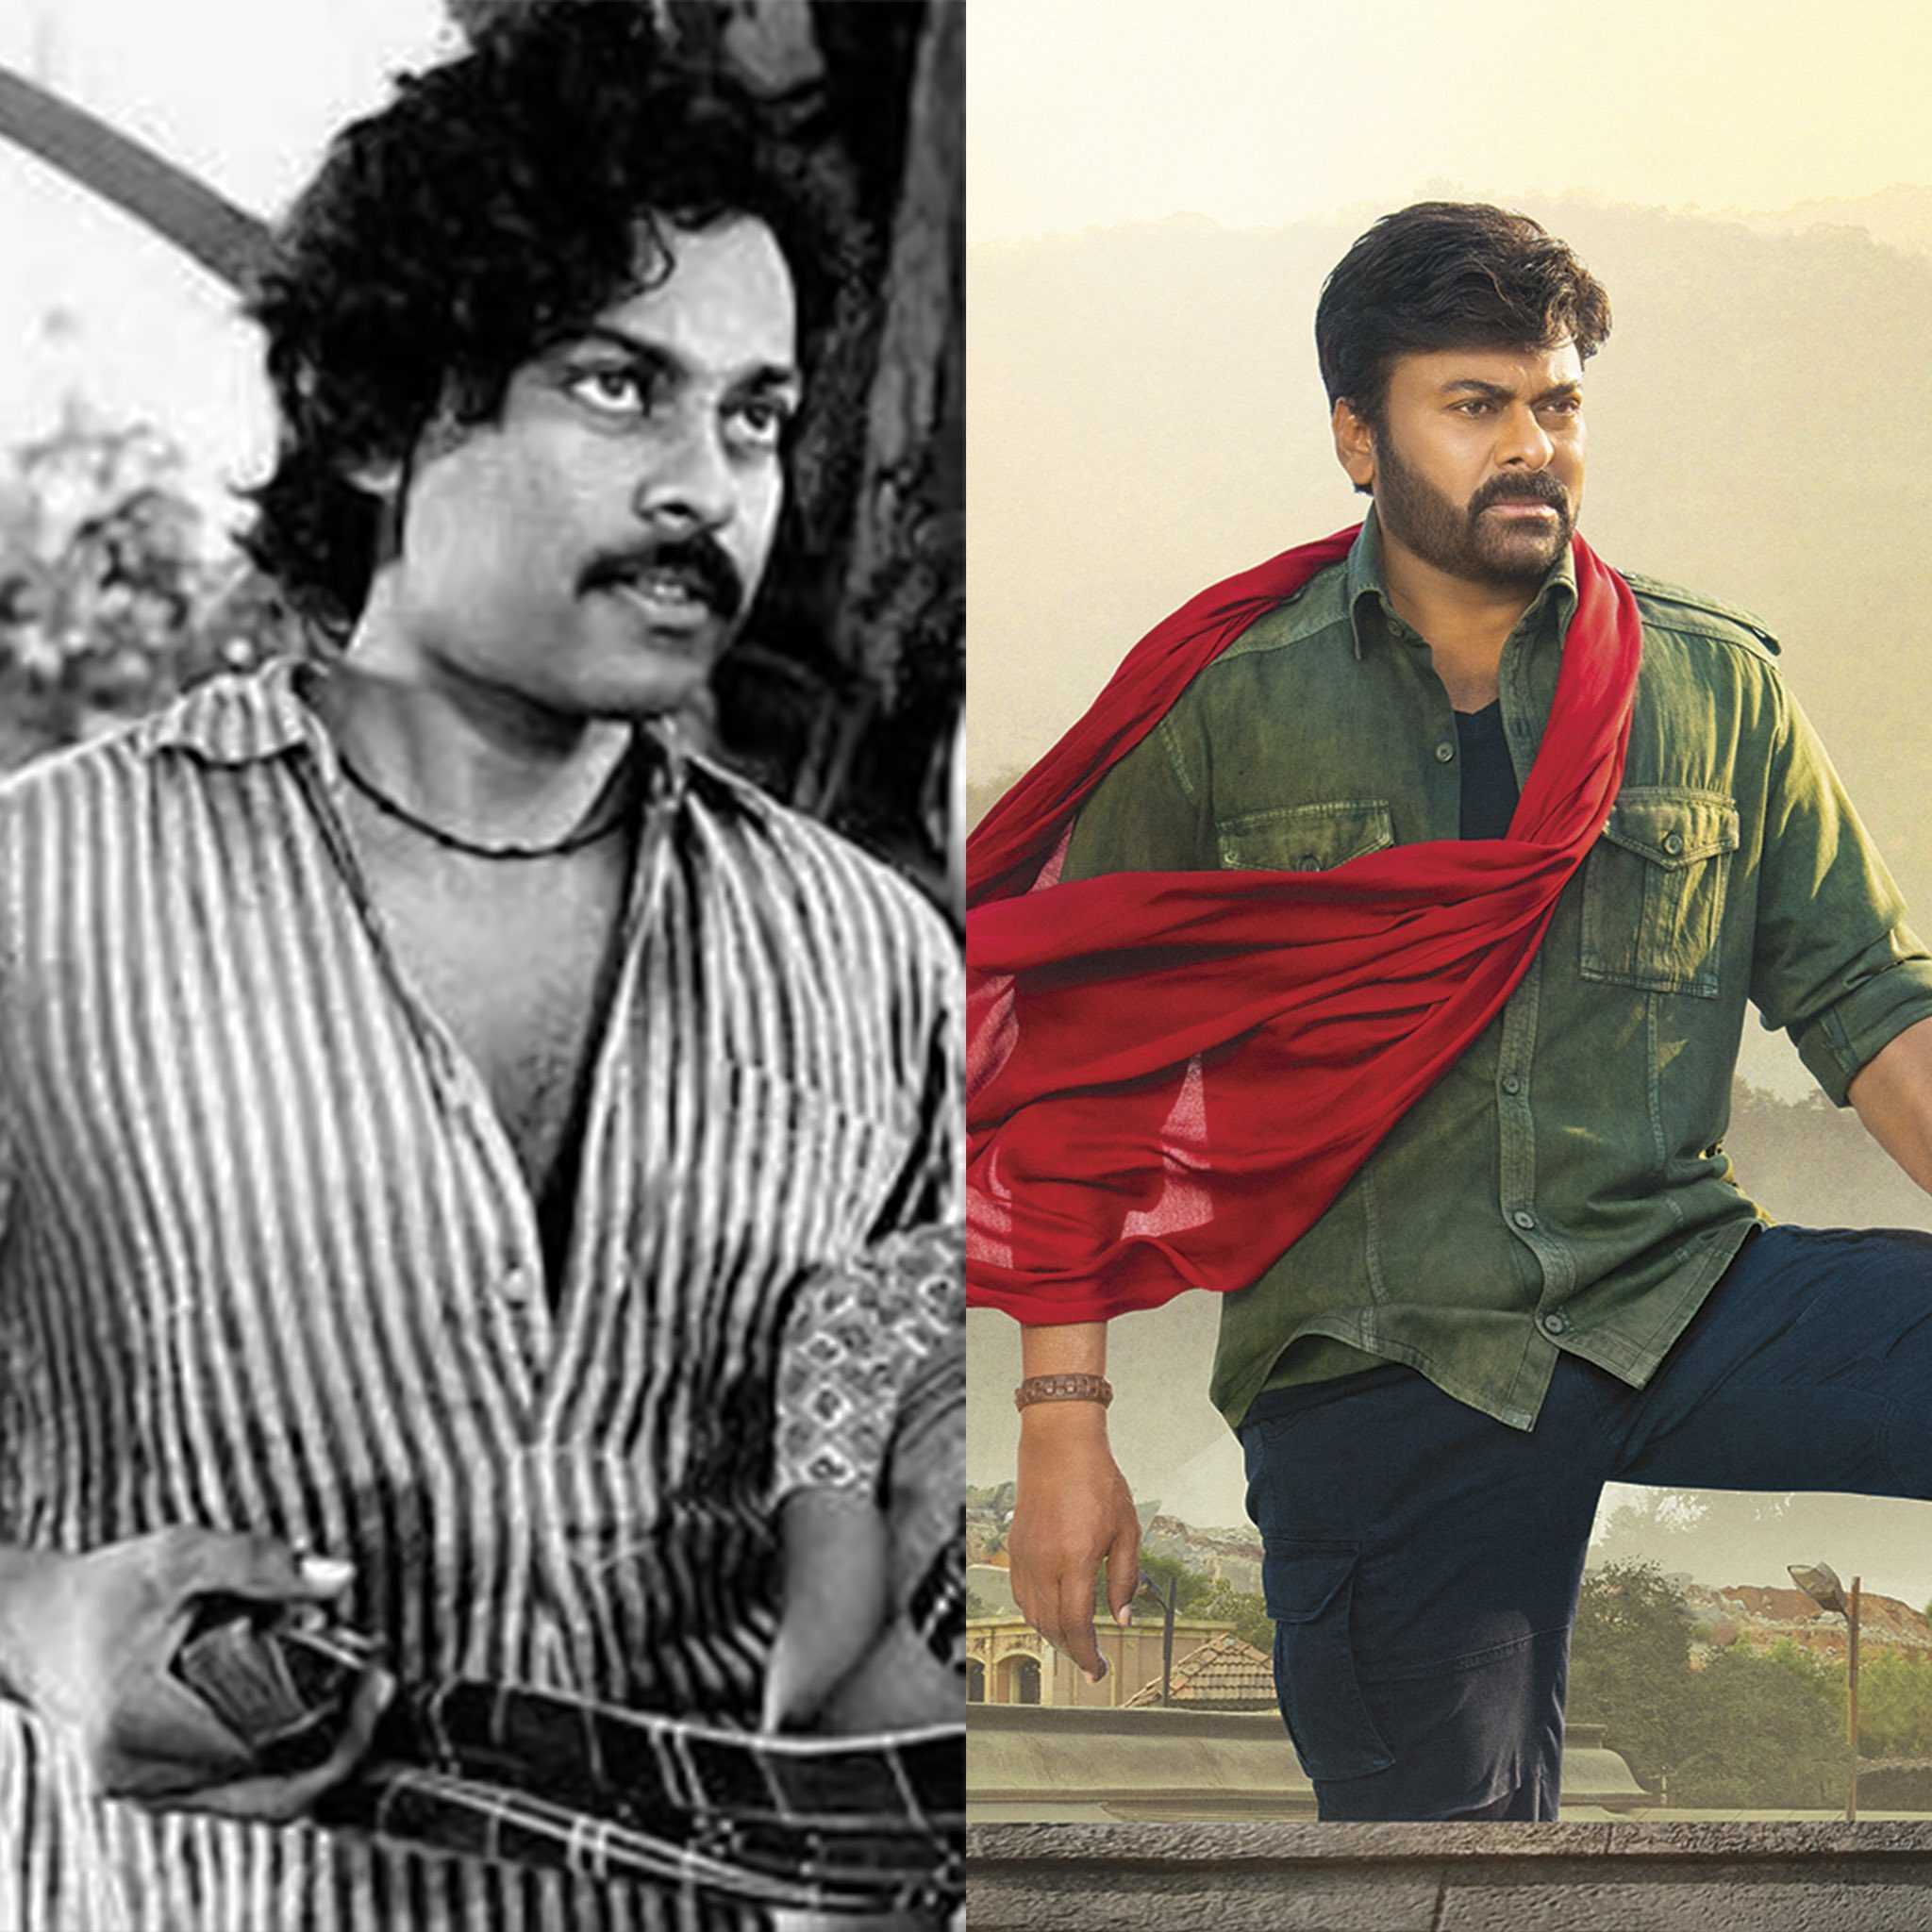 Telugu megastar Chiranjeevi completes 43 years in film industry, reminisces days of yore